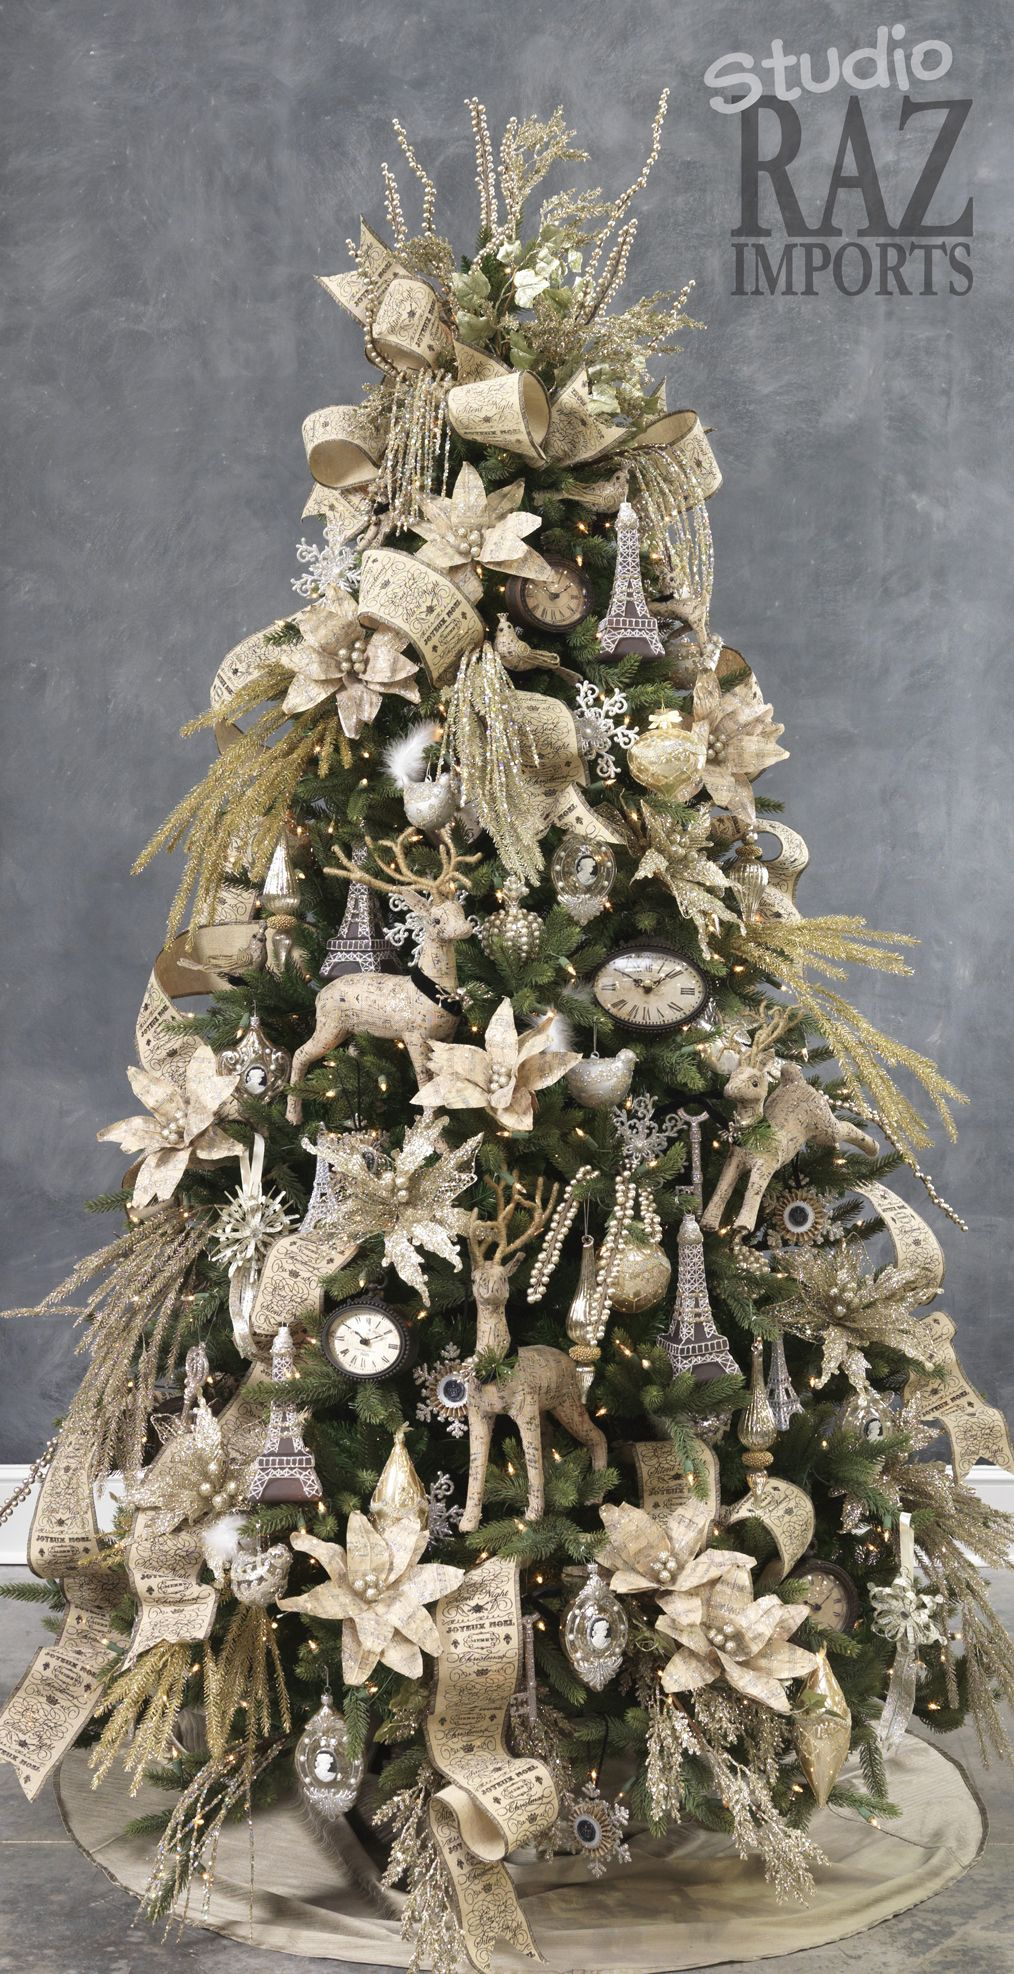 pretty nice e9f7a 1a5cf A lovely Raz Studio Christmas Tree decorated in all white ...